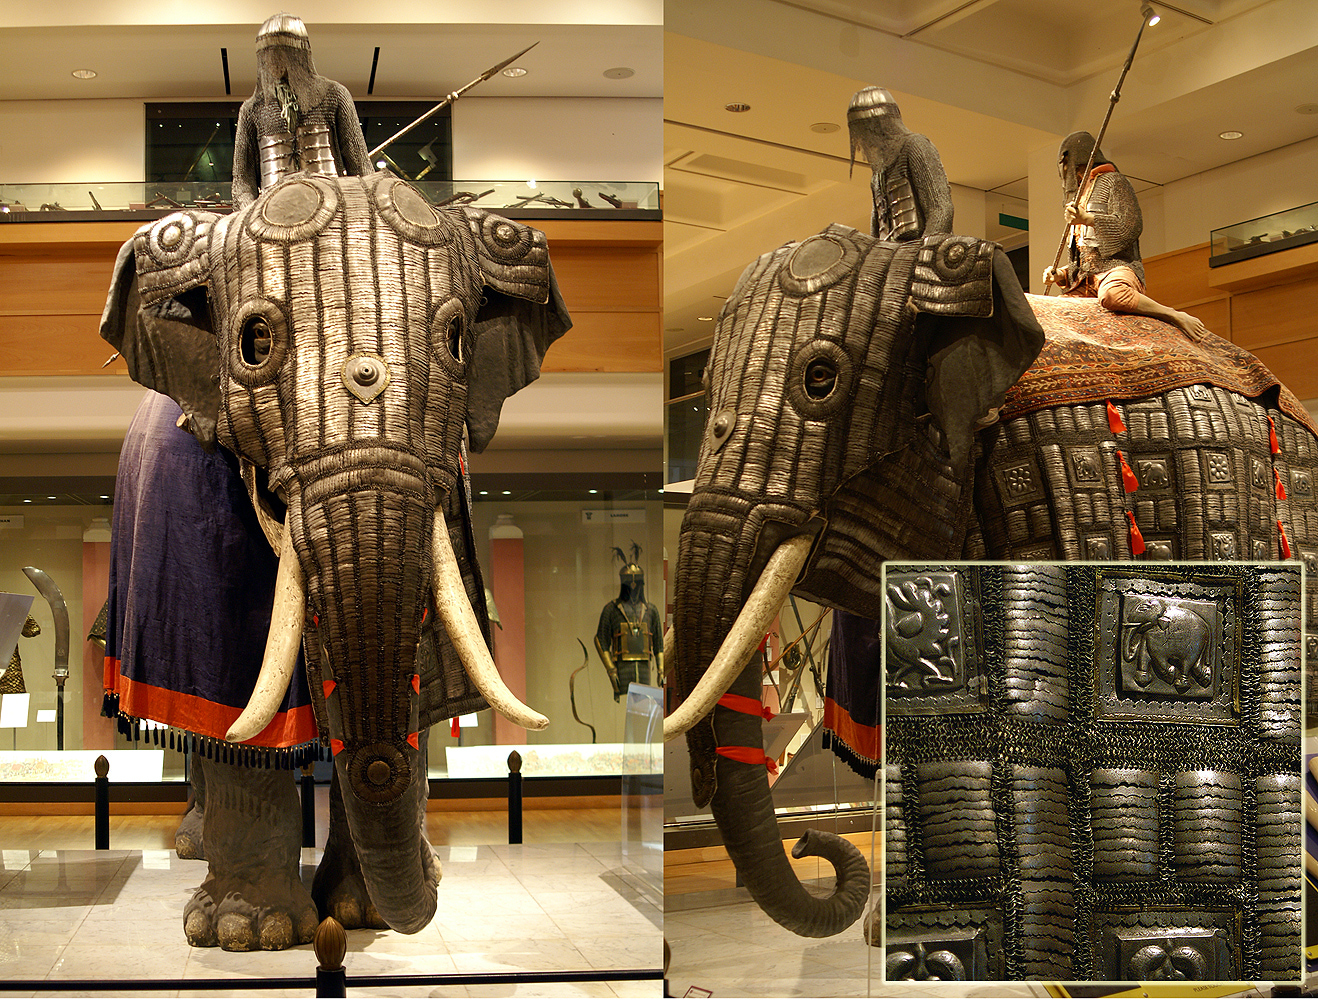 A Damn Awesome Collection of Some Artifacts from Ancient Dynasties in the World